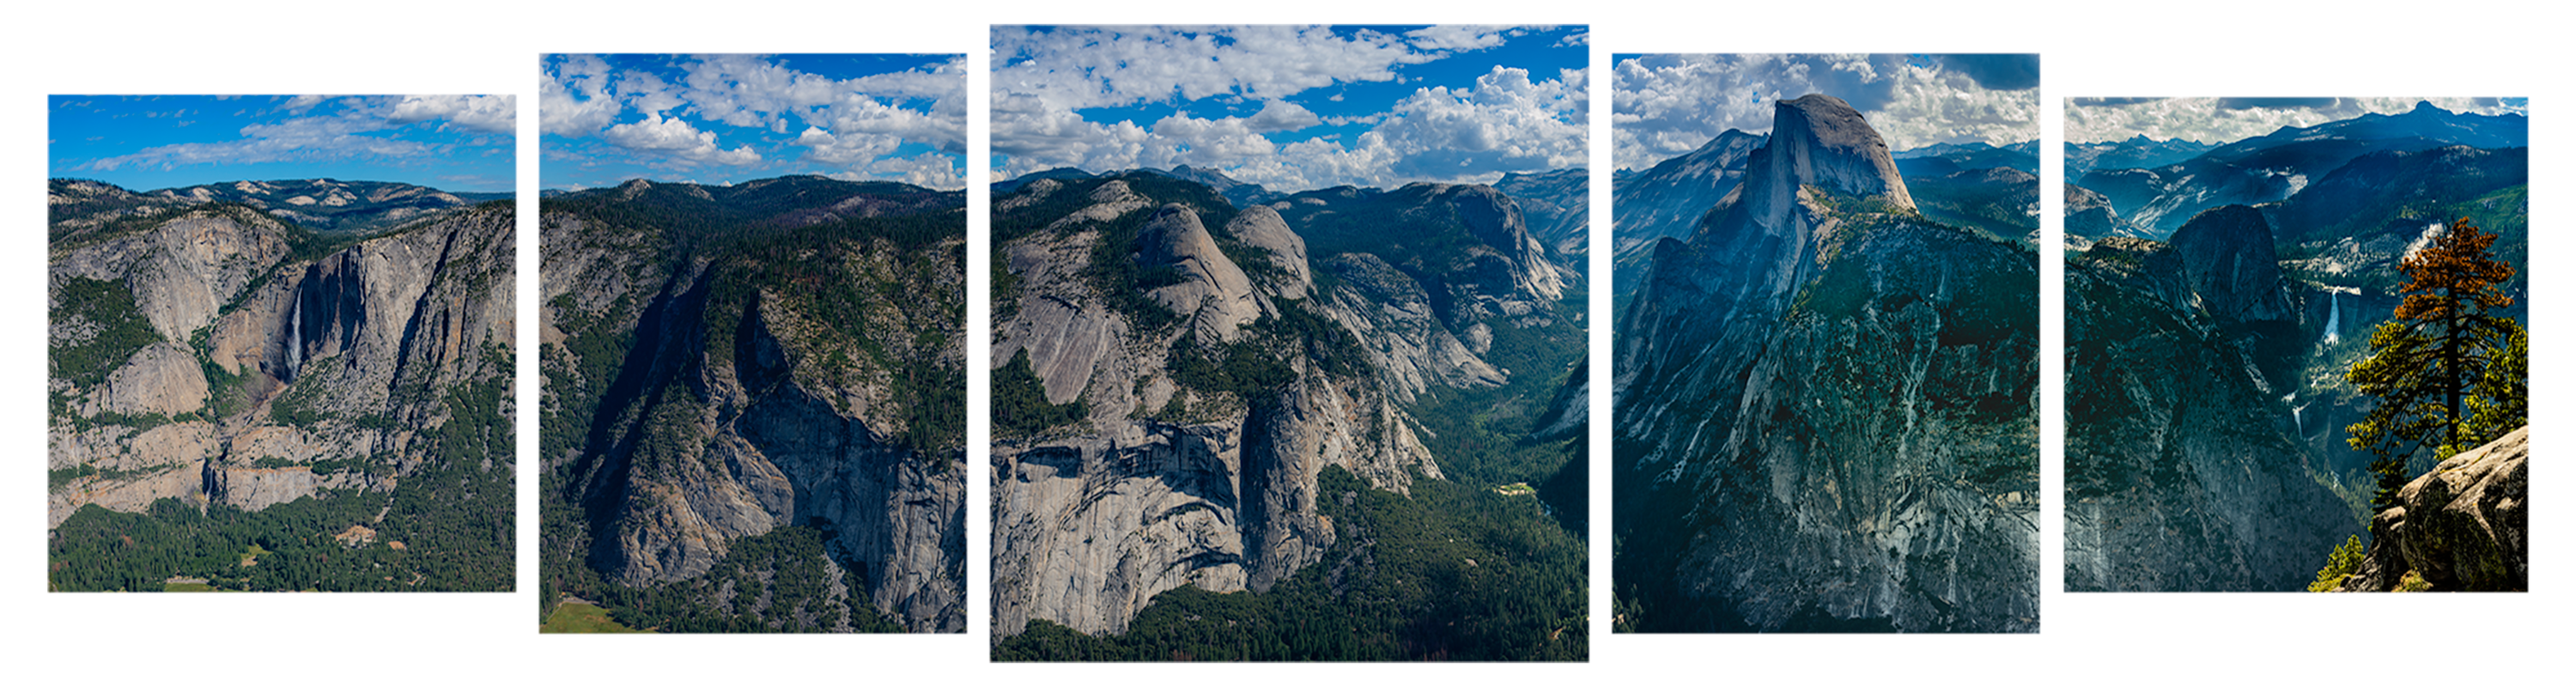 Yosemite valley 5 panel for web site 8000x2000 px iyh4tf